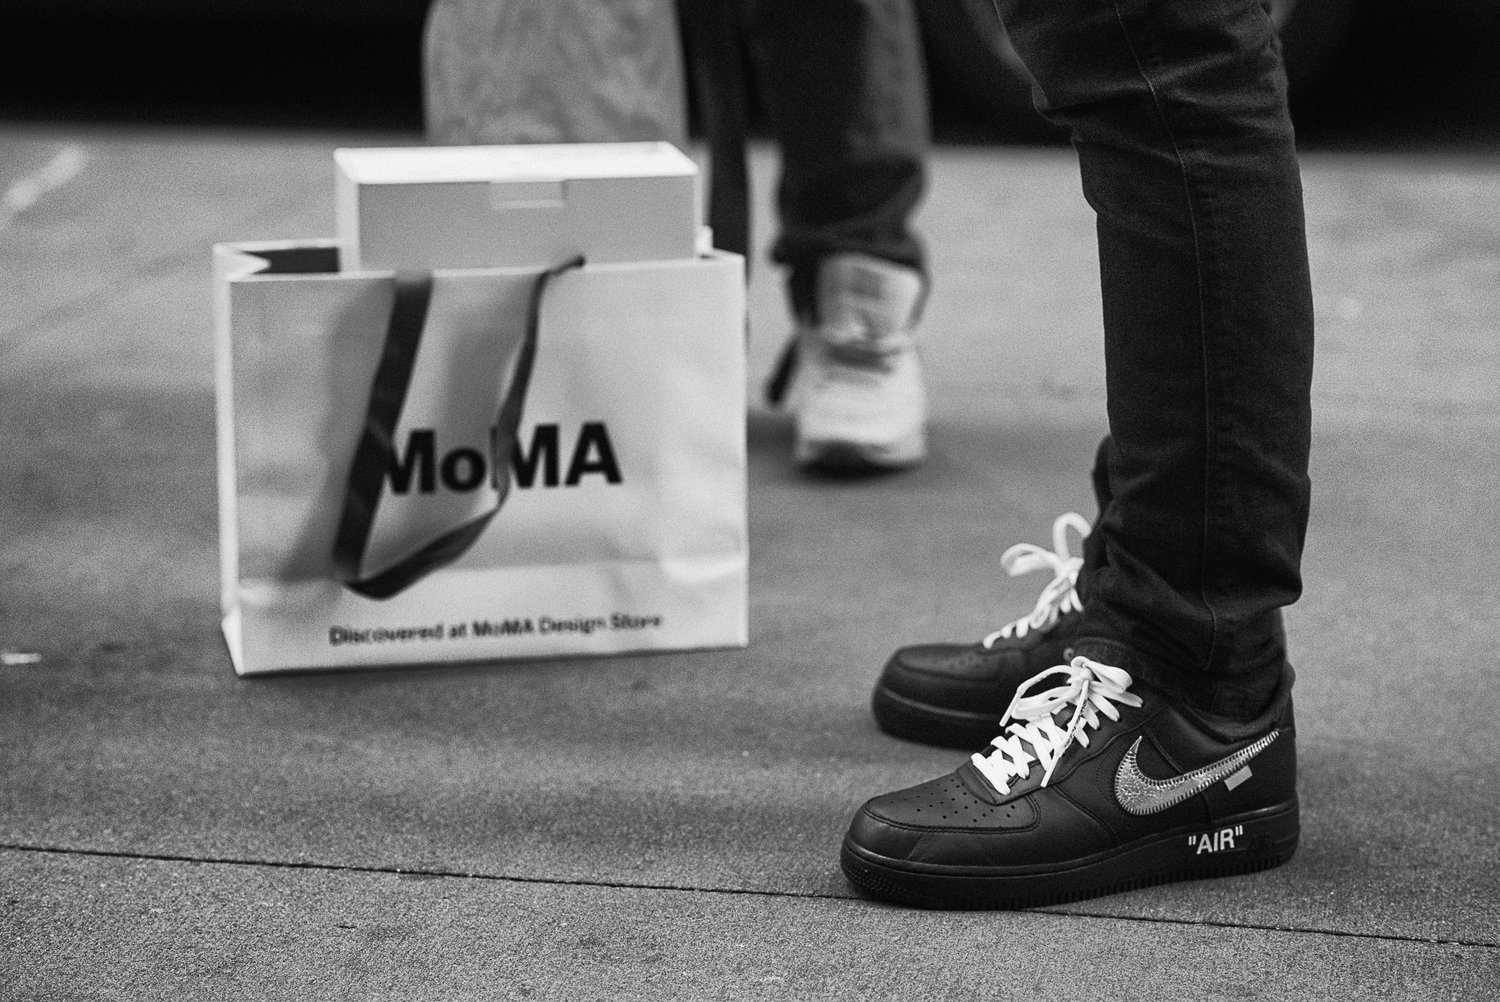 trimestre Sudor gasolina  What people wore to the MoMA x Virgil Abloh Off-White Nike Air Force 1  Launch — Ricky Opaterny